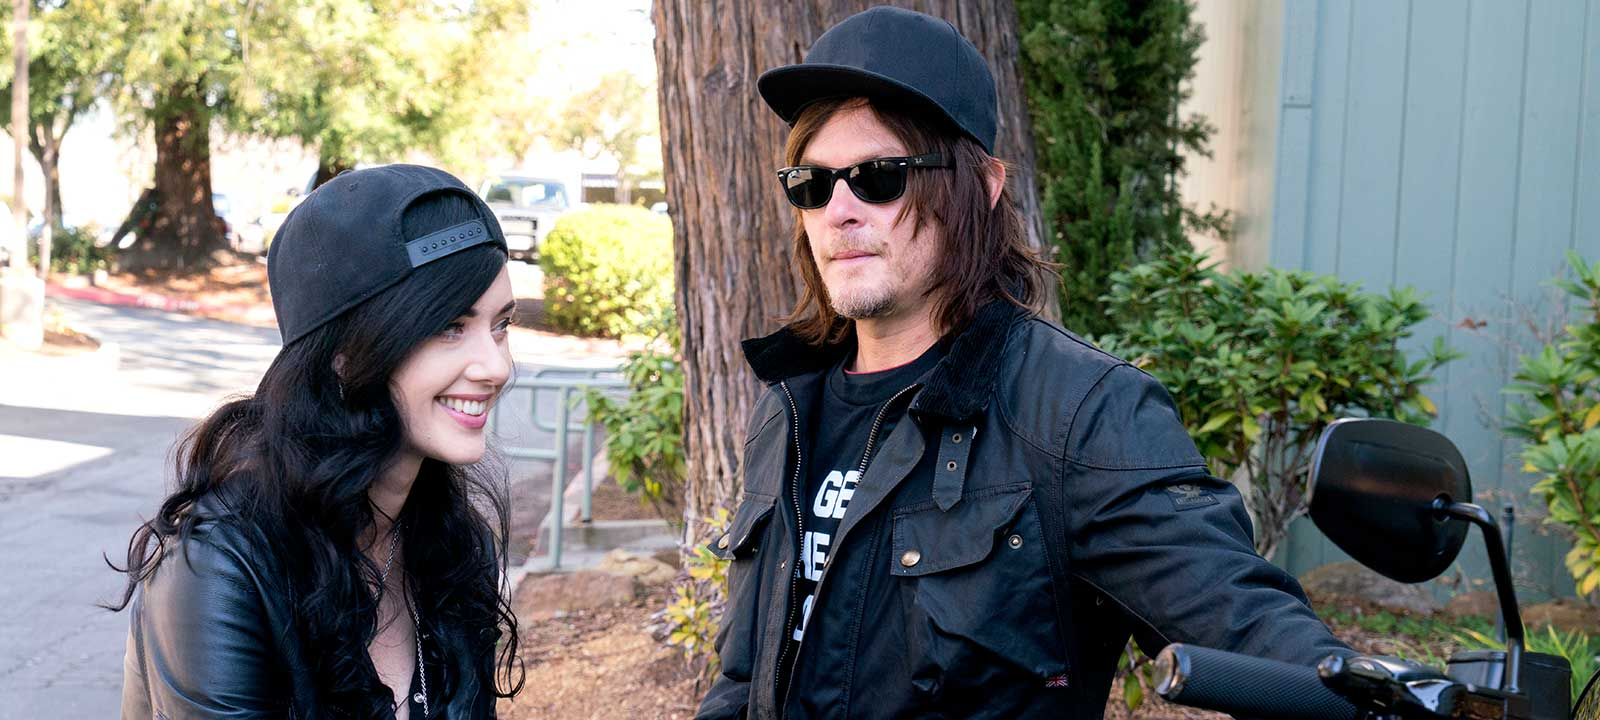 Cecilia singley and norman reedus still dating 10